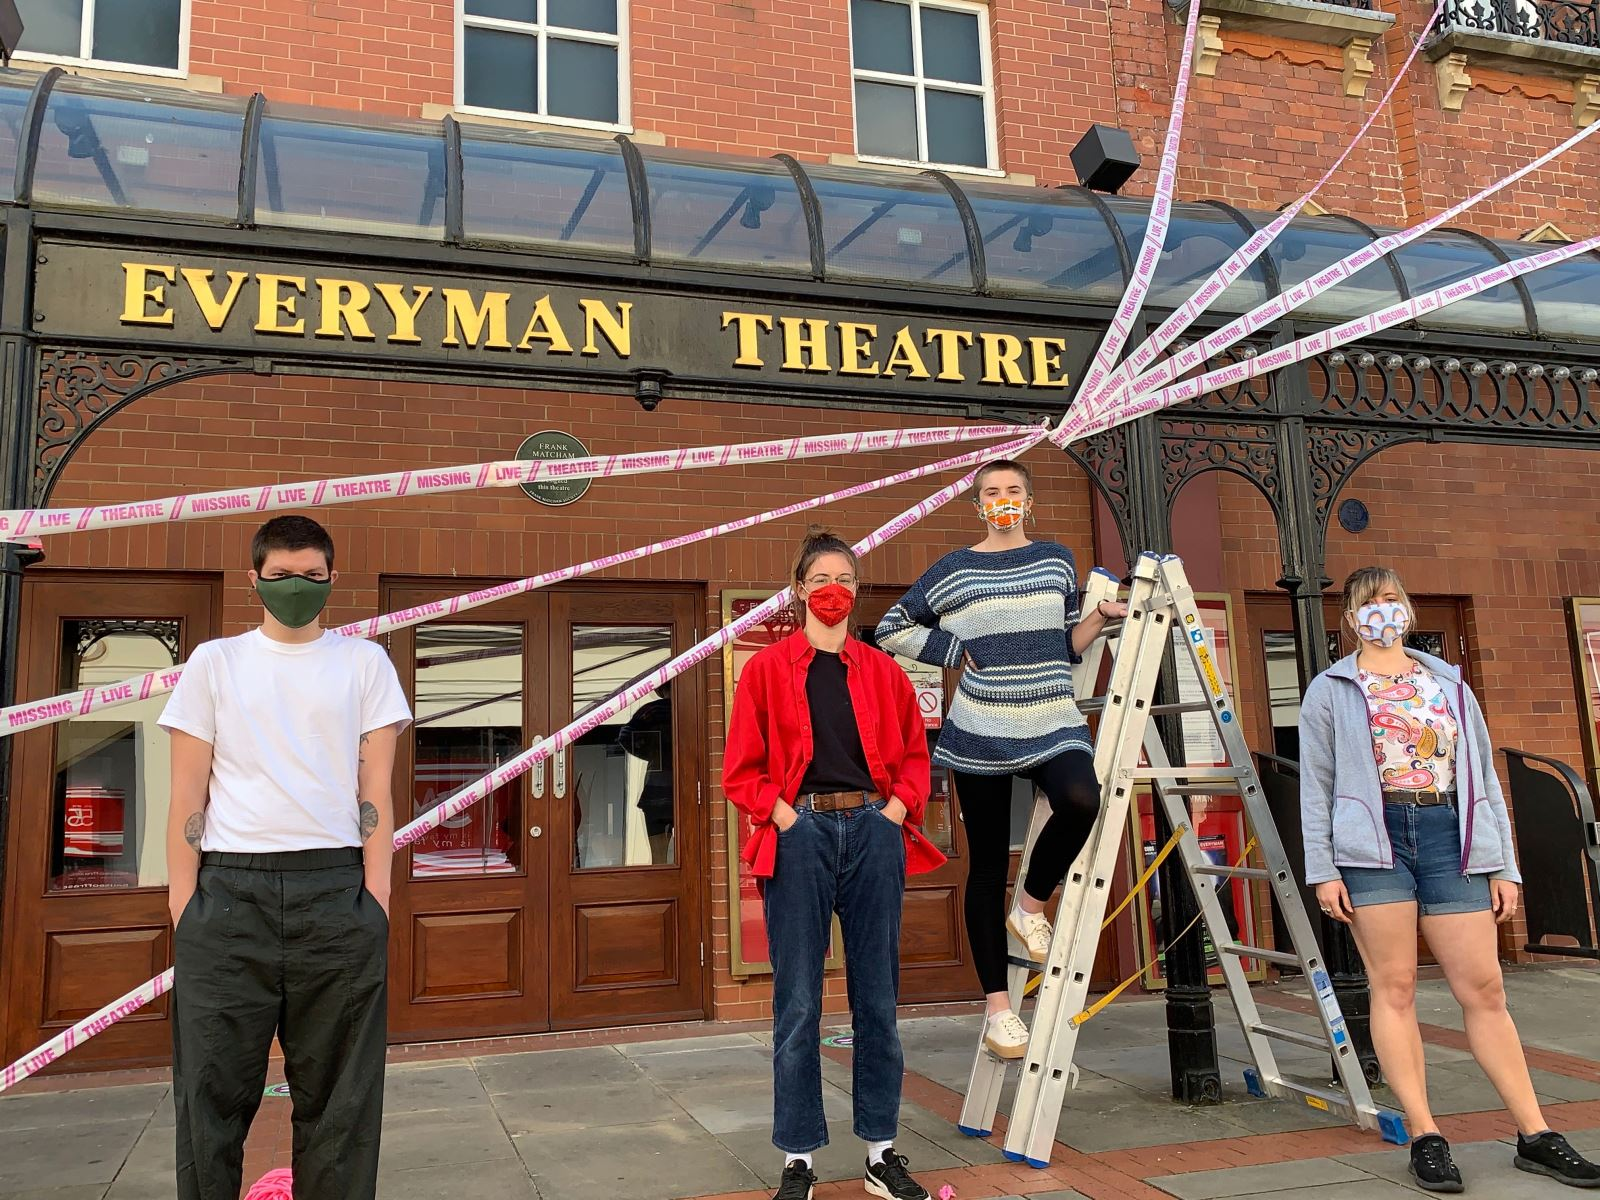 From l to r: Jacob Lucy, Lauren Dix, Dora Furnival and Lucy Fowler from Scene Change wrap the Everyman Theatre, Cheltenham in decorative #missinglivetheatre ribbon.